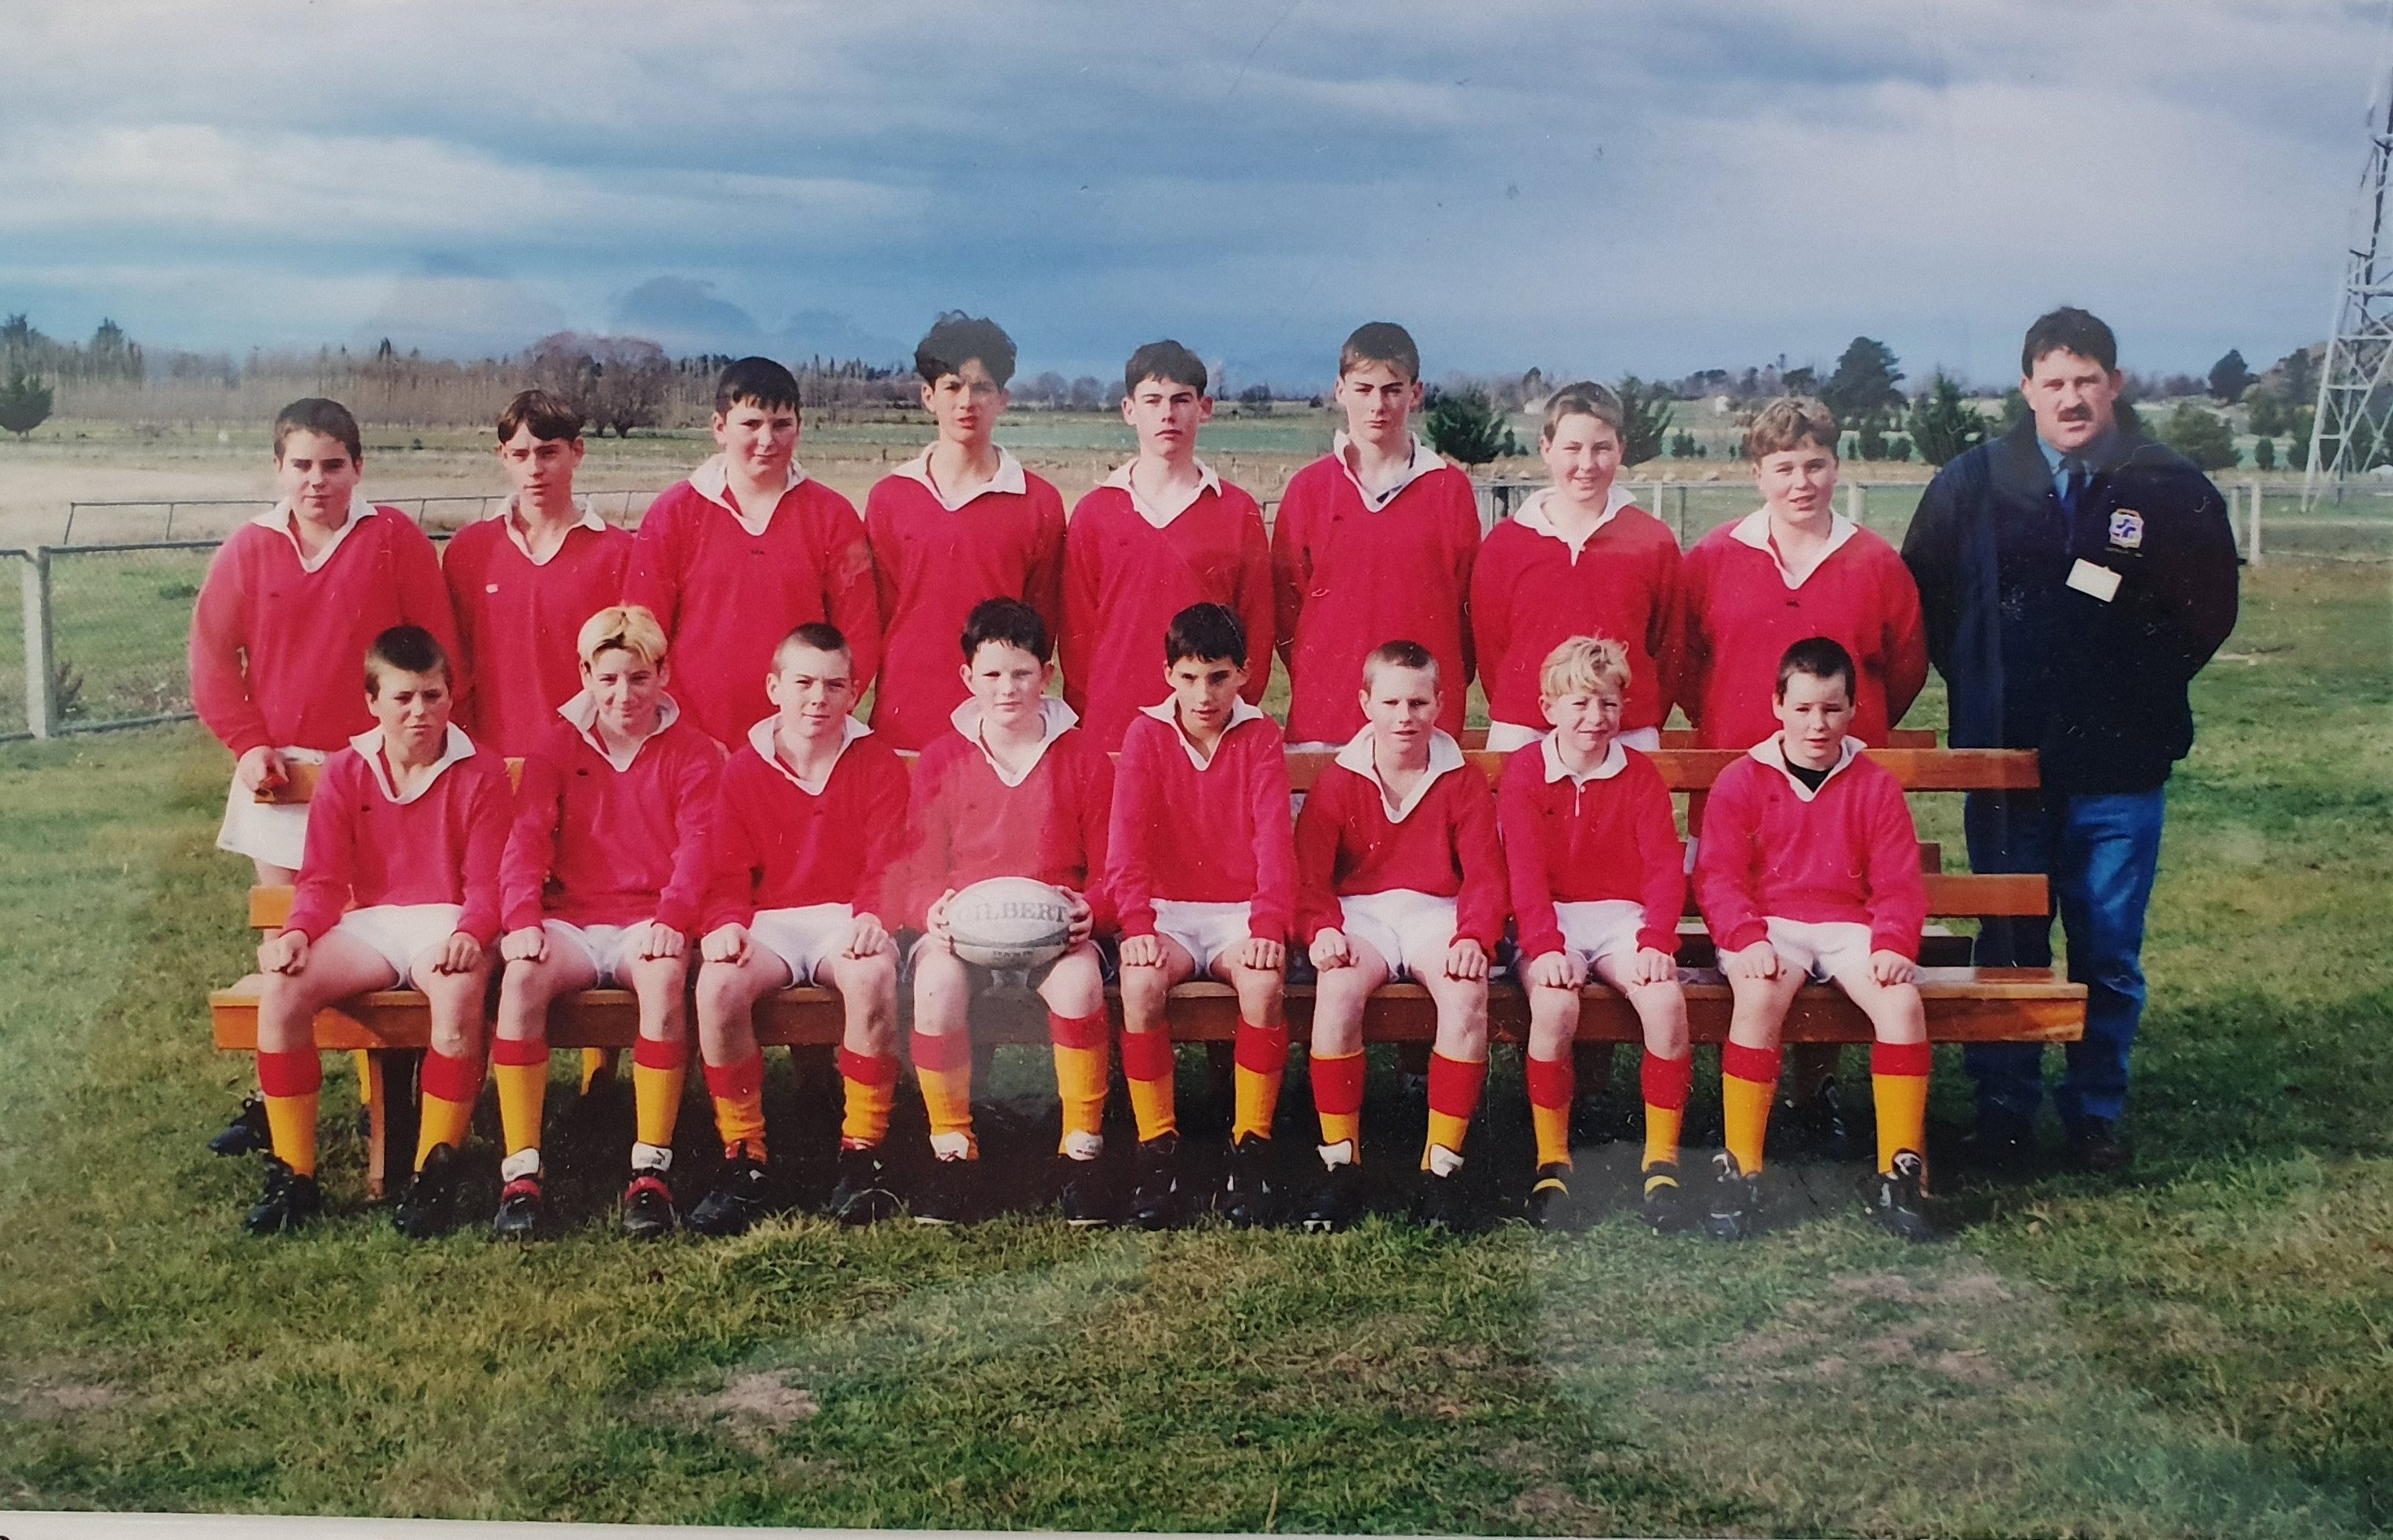 Mr Deed (back row, fourth from left) was part of an invincible Kurow junior rugby team in 1998, winning all 15 games in the season. Photos: Supplied